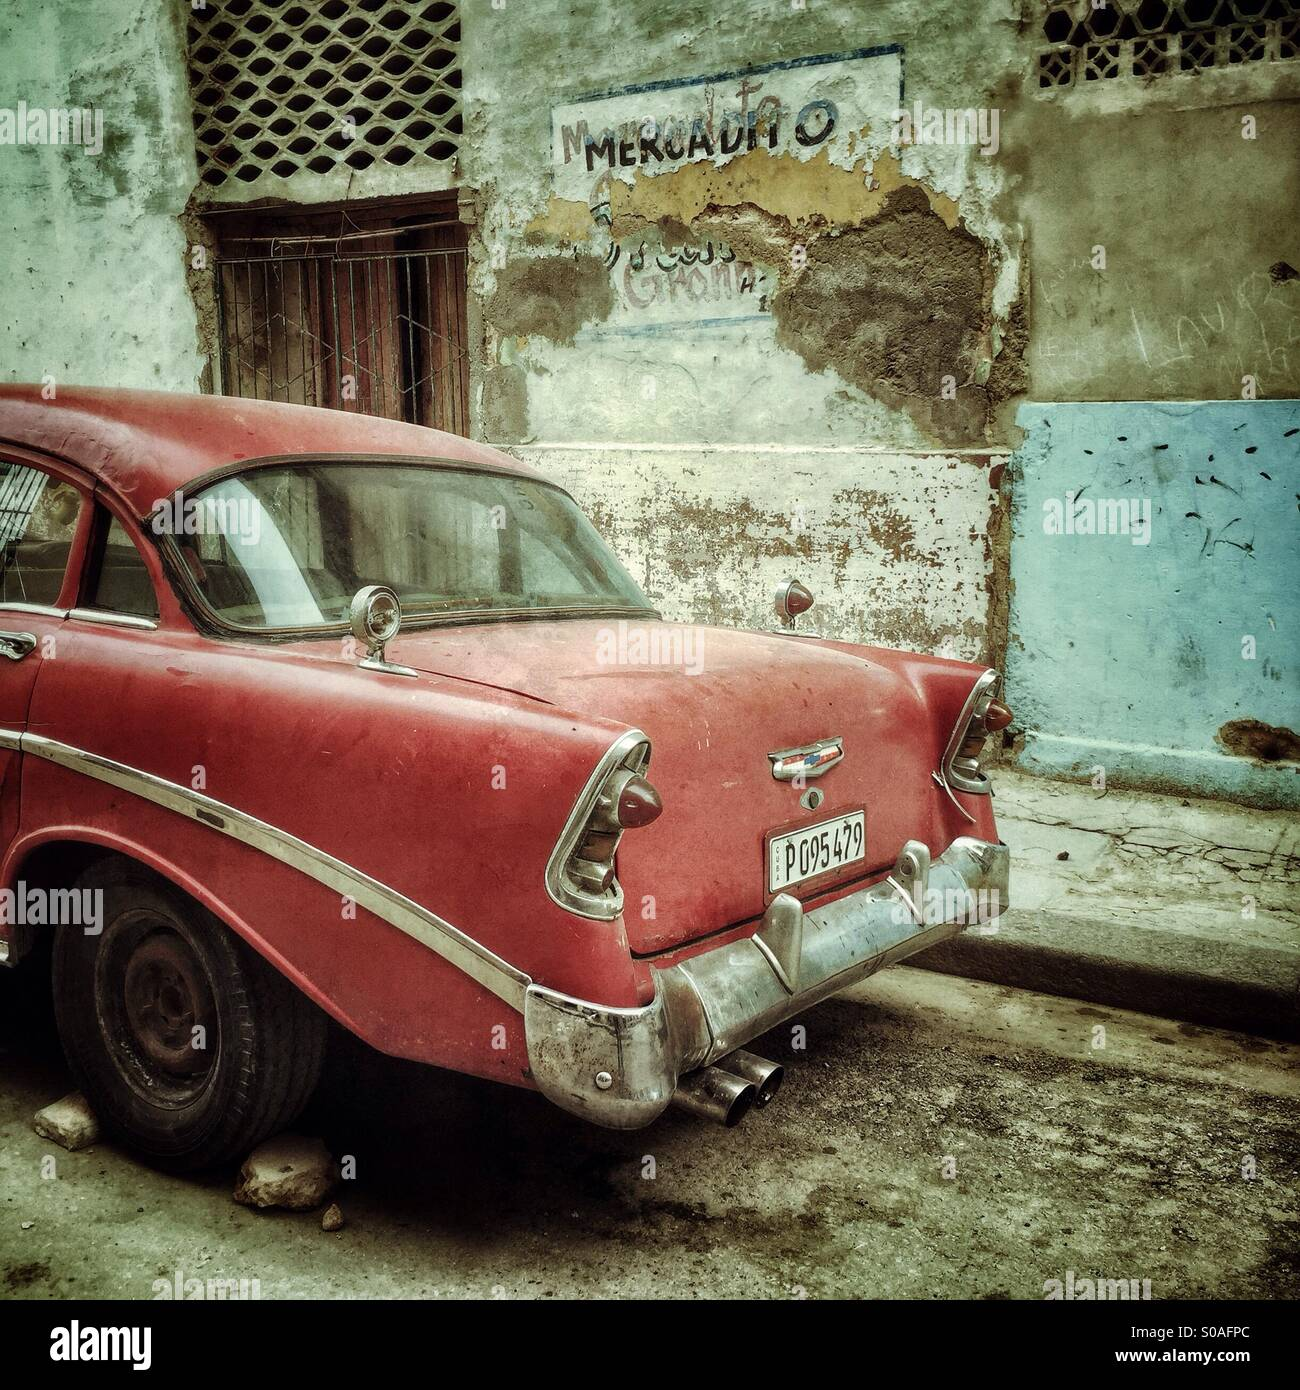 Rear view of a red vintage Cuban Car, parked by a peeling painted decaying exterior wall. Havana, Cuba, Caribbean - Stock Image